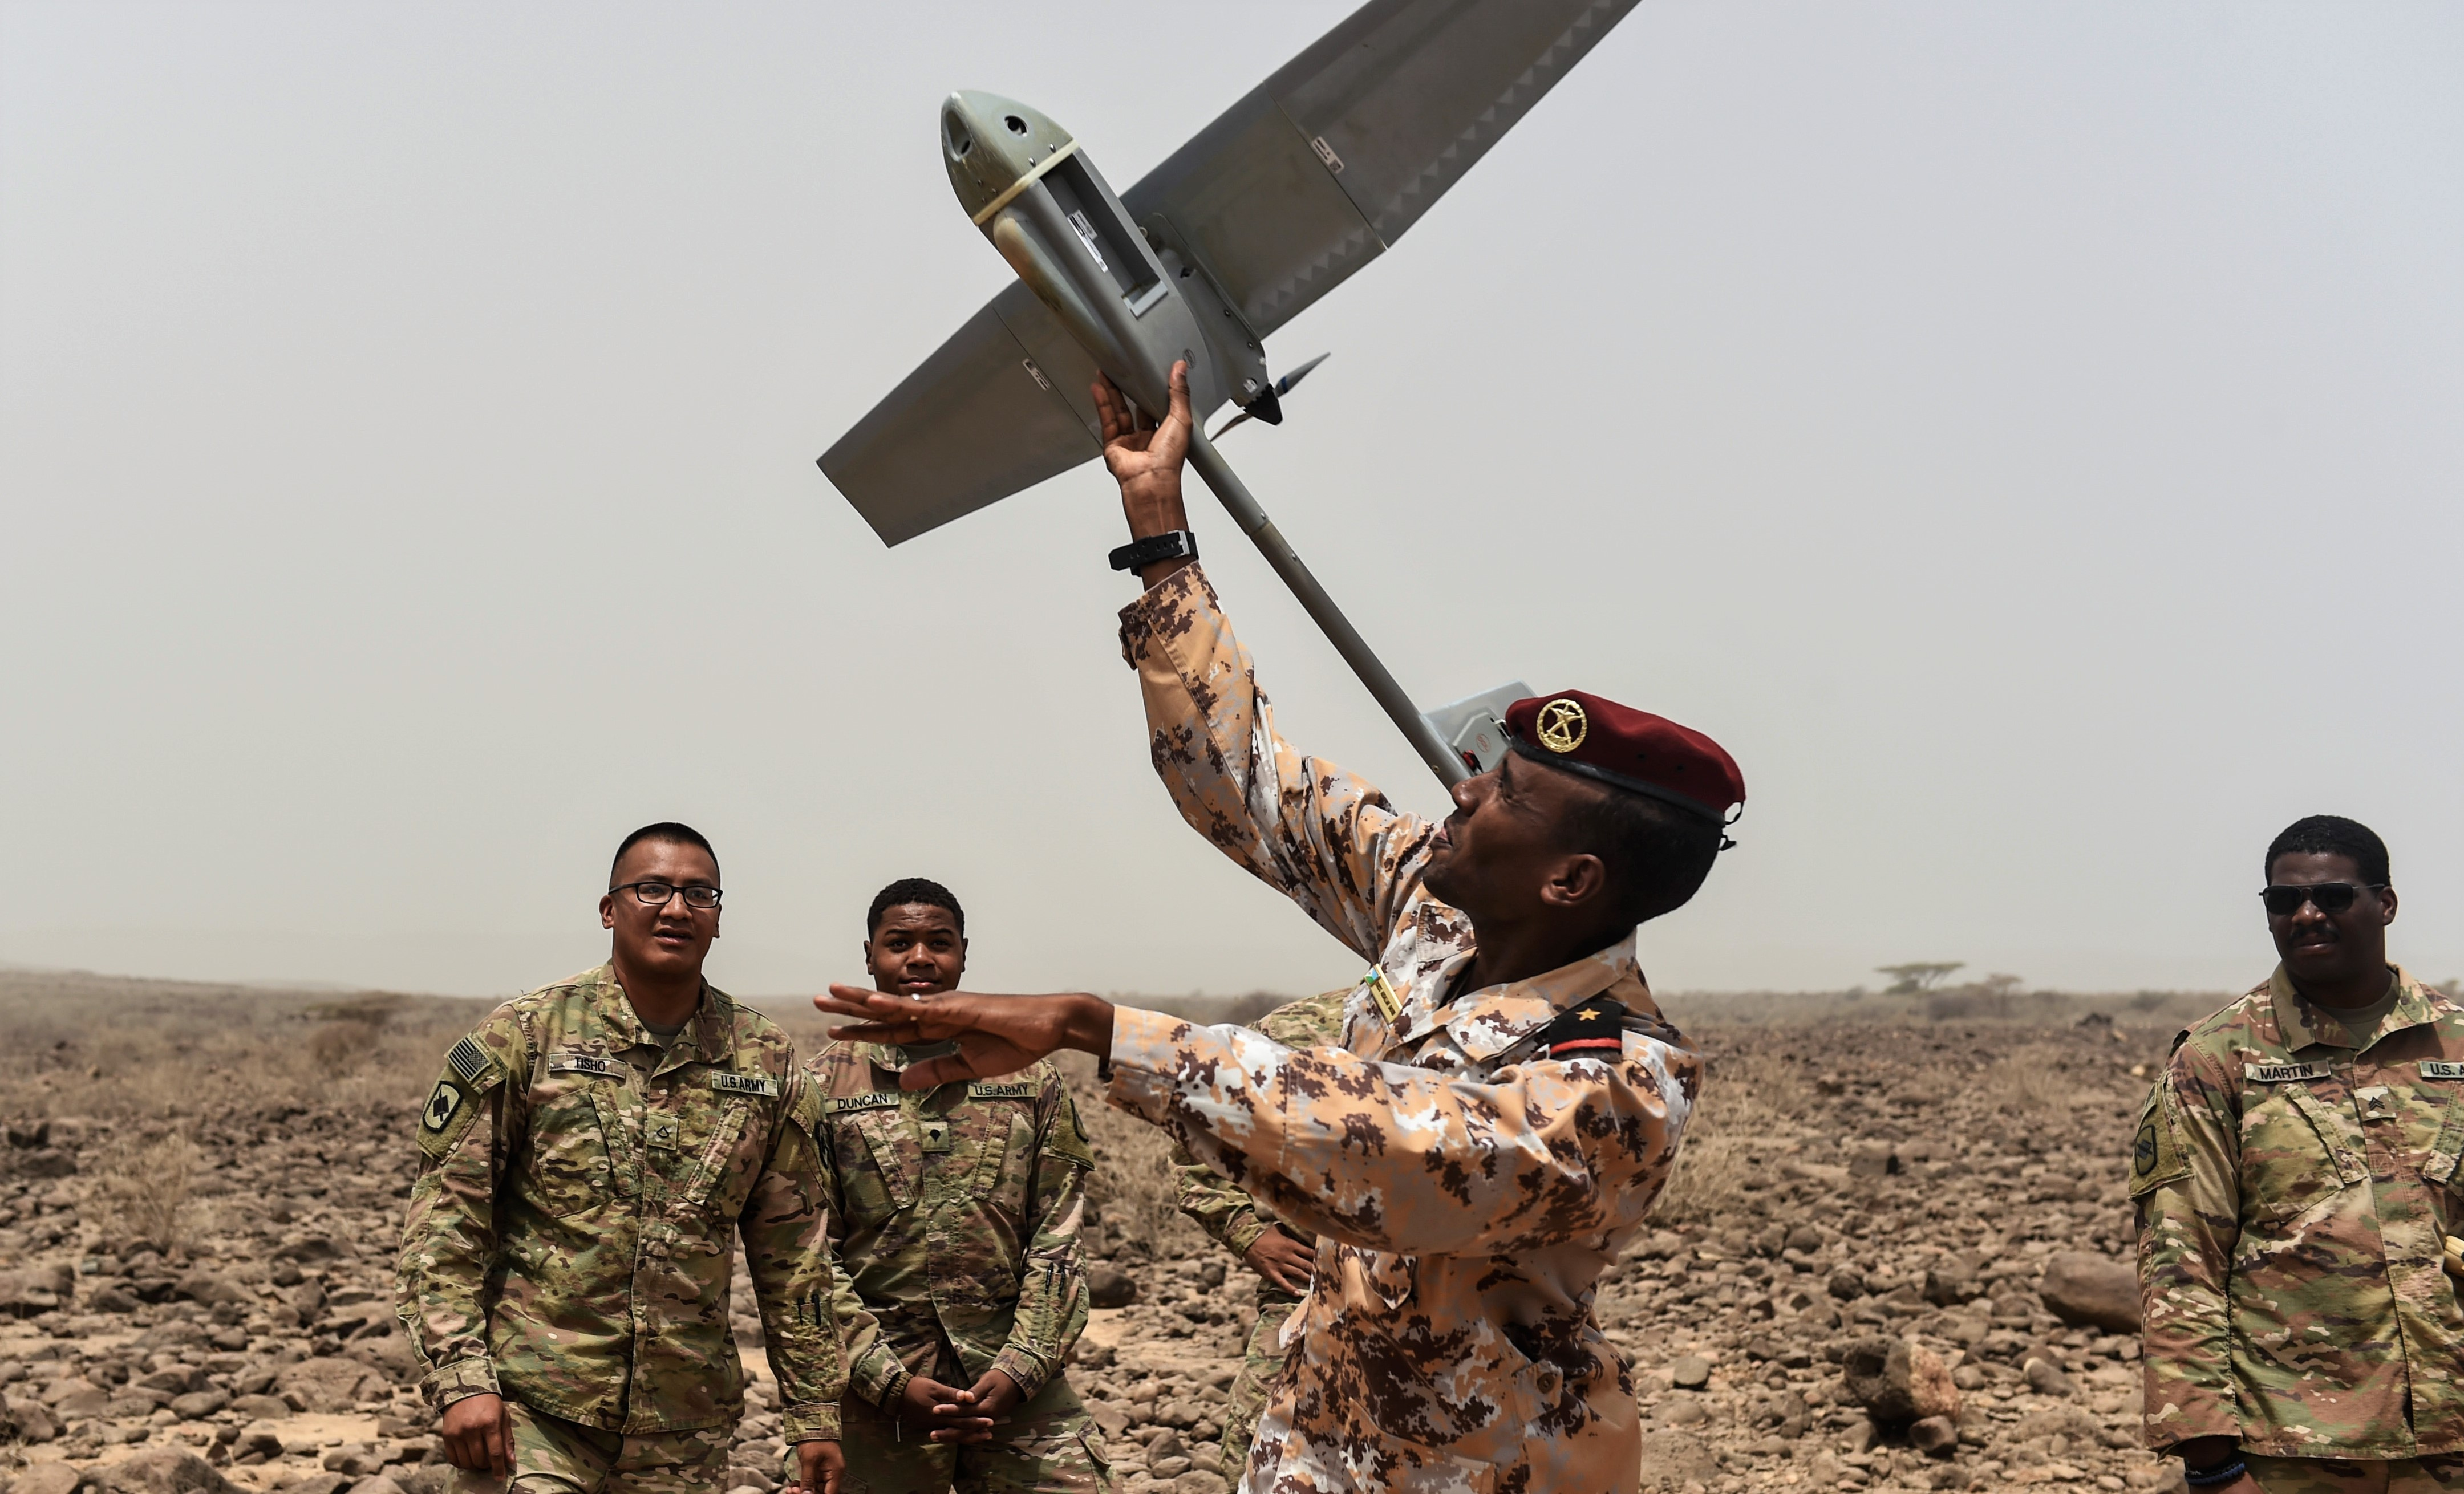 Djibouti Armed Forces Lt. Idriss Abdallah Daoud prepares to hand launch a RQ-11 Raven remotely piloted aircraft during a demonstration in an airfield in southern Djibouti, Aug. 21, 2017. U.S. Army Soldiers of the 1st Battalion, 153rd Infantry Regiment, Task Force Warrior, an associated unit of Combined Joint Task Force - Horn of Africa, gave the demonstration in an effort to help the Djibouti Armed Forces determine if the Raven might benefit FAD operations, helping to maintain stability and security in and around Djibouti. (U.S. Air Force photo by Staff Sgt. Eboni Prince)